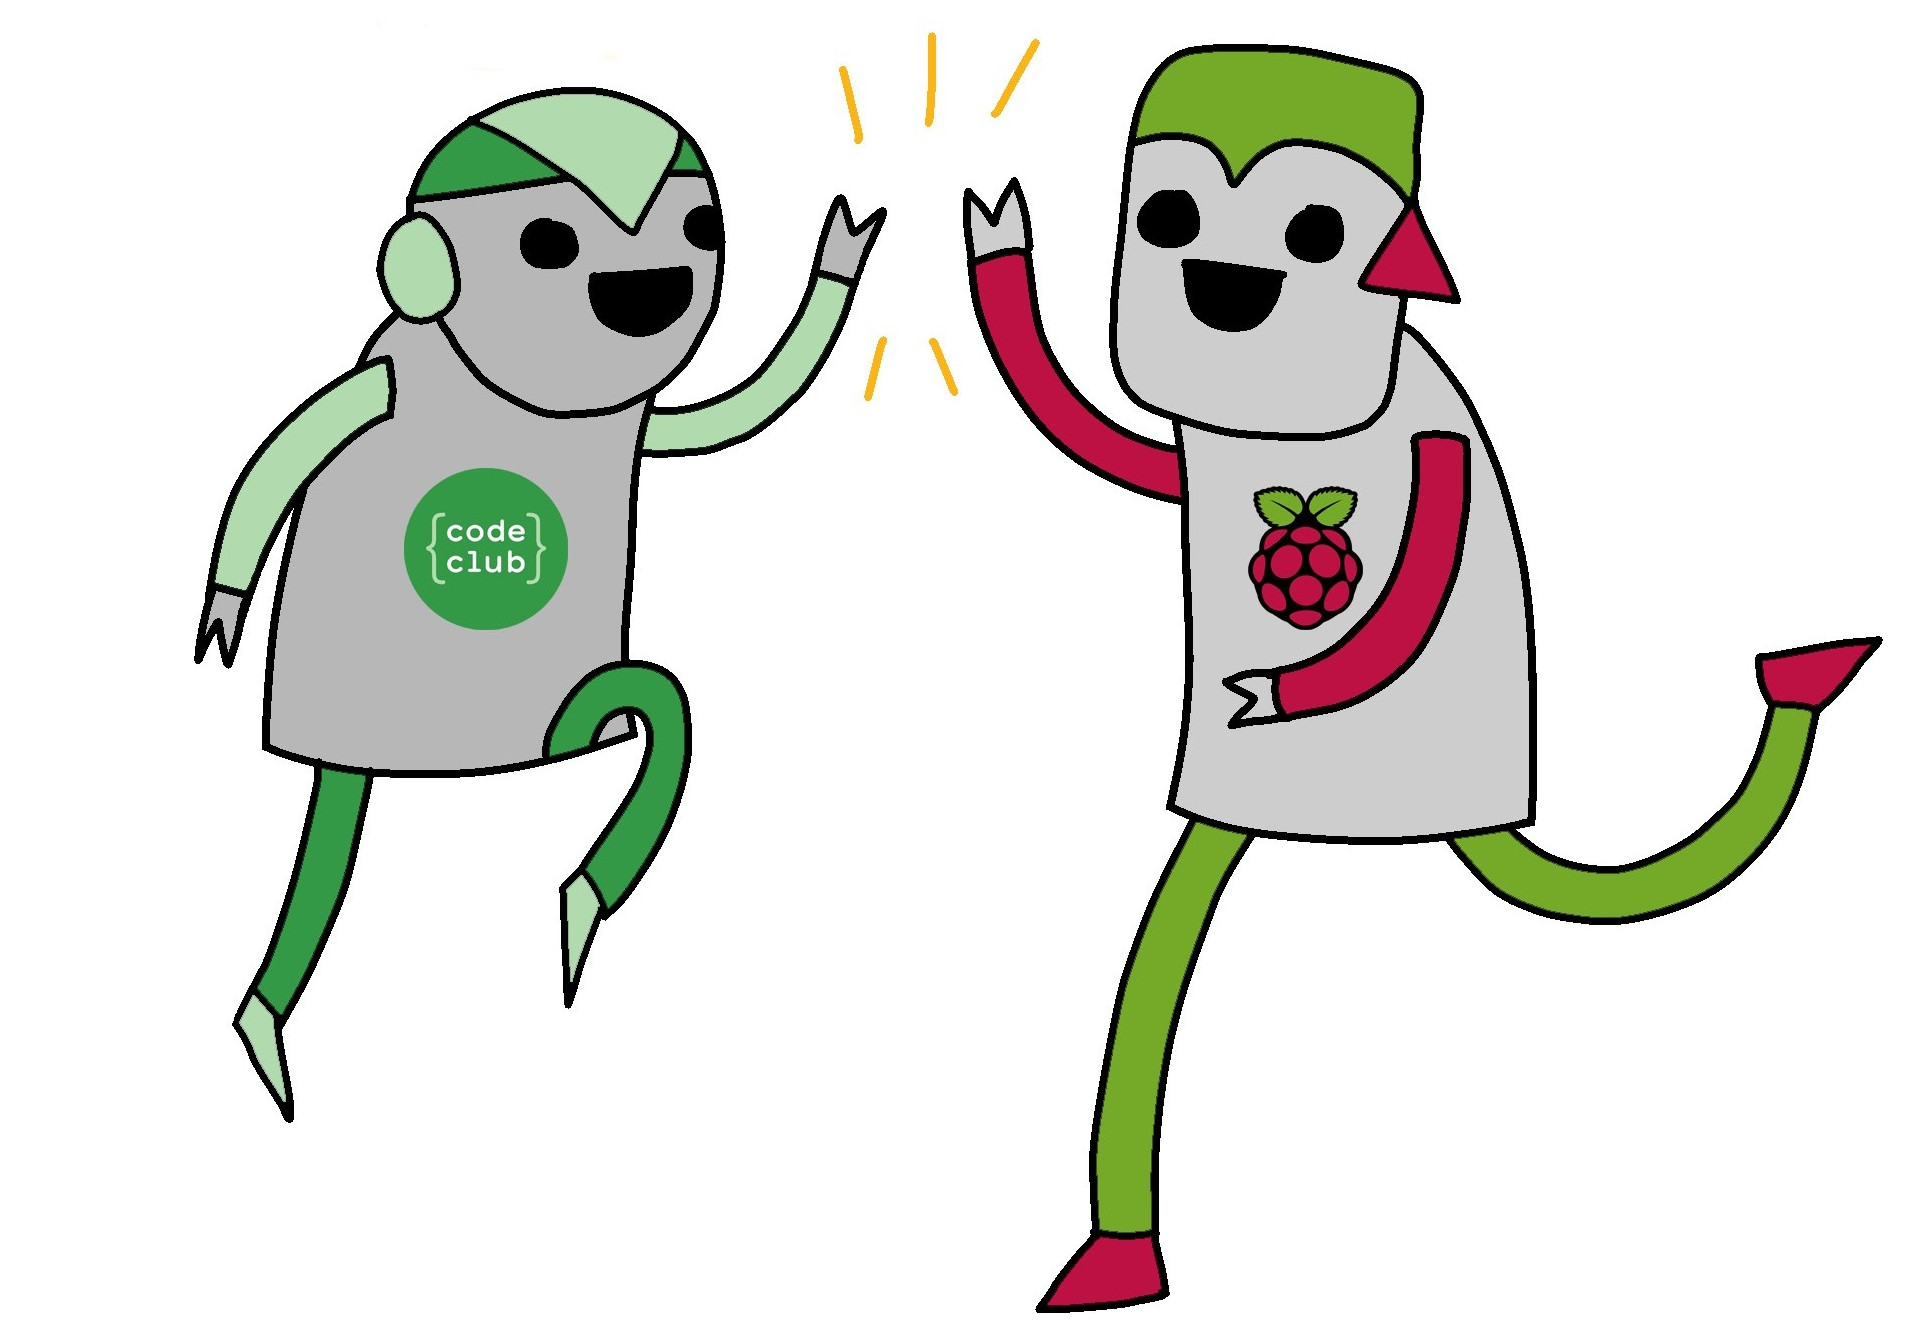 how to make a program run on startup raspberry pi